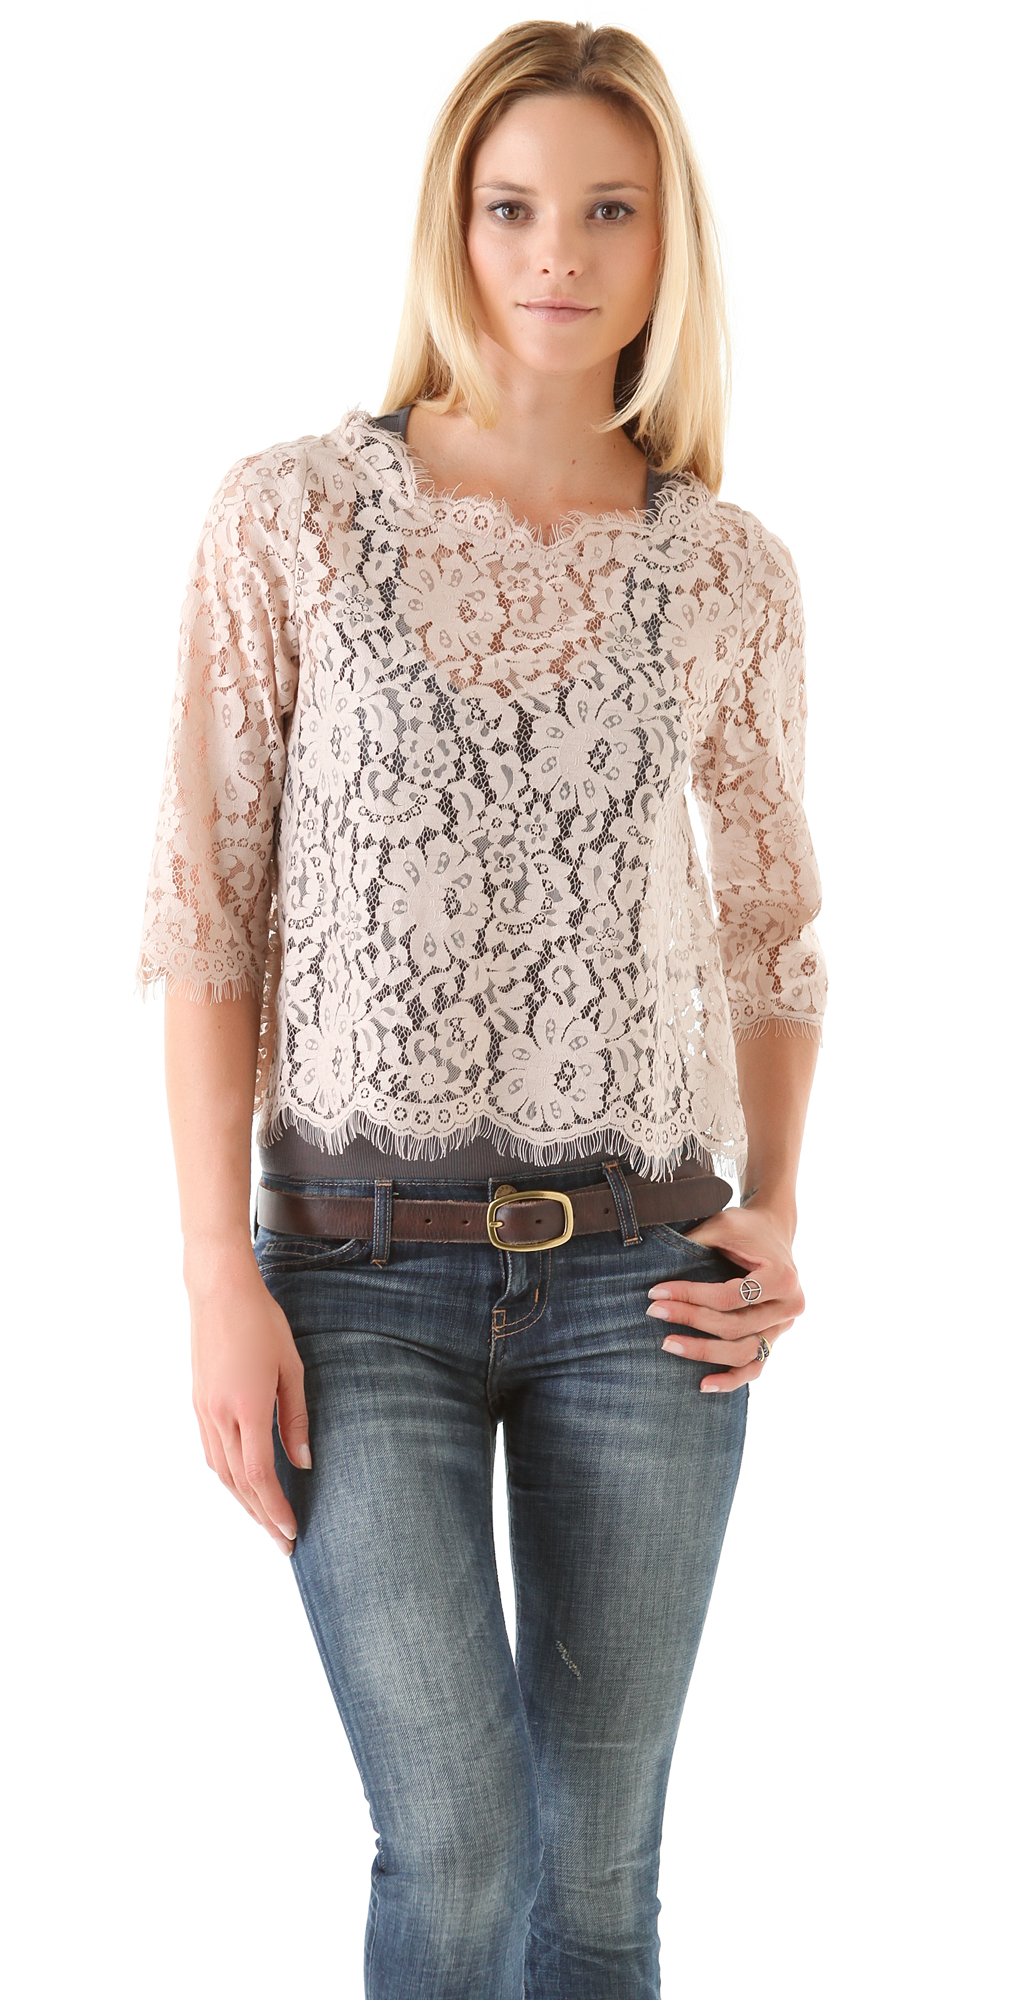 67bcf51365279 Joie Elvia Back Button Lace Top